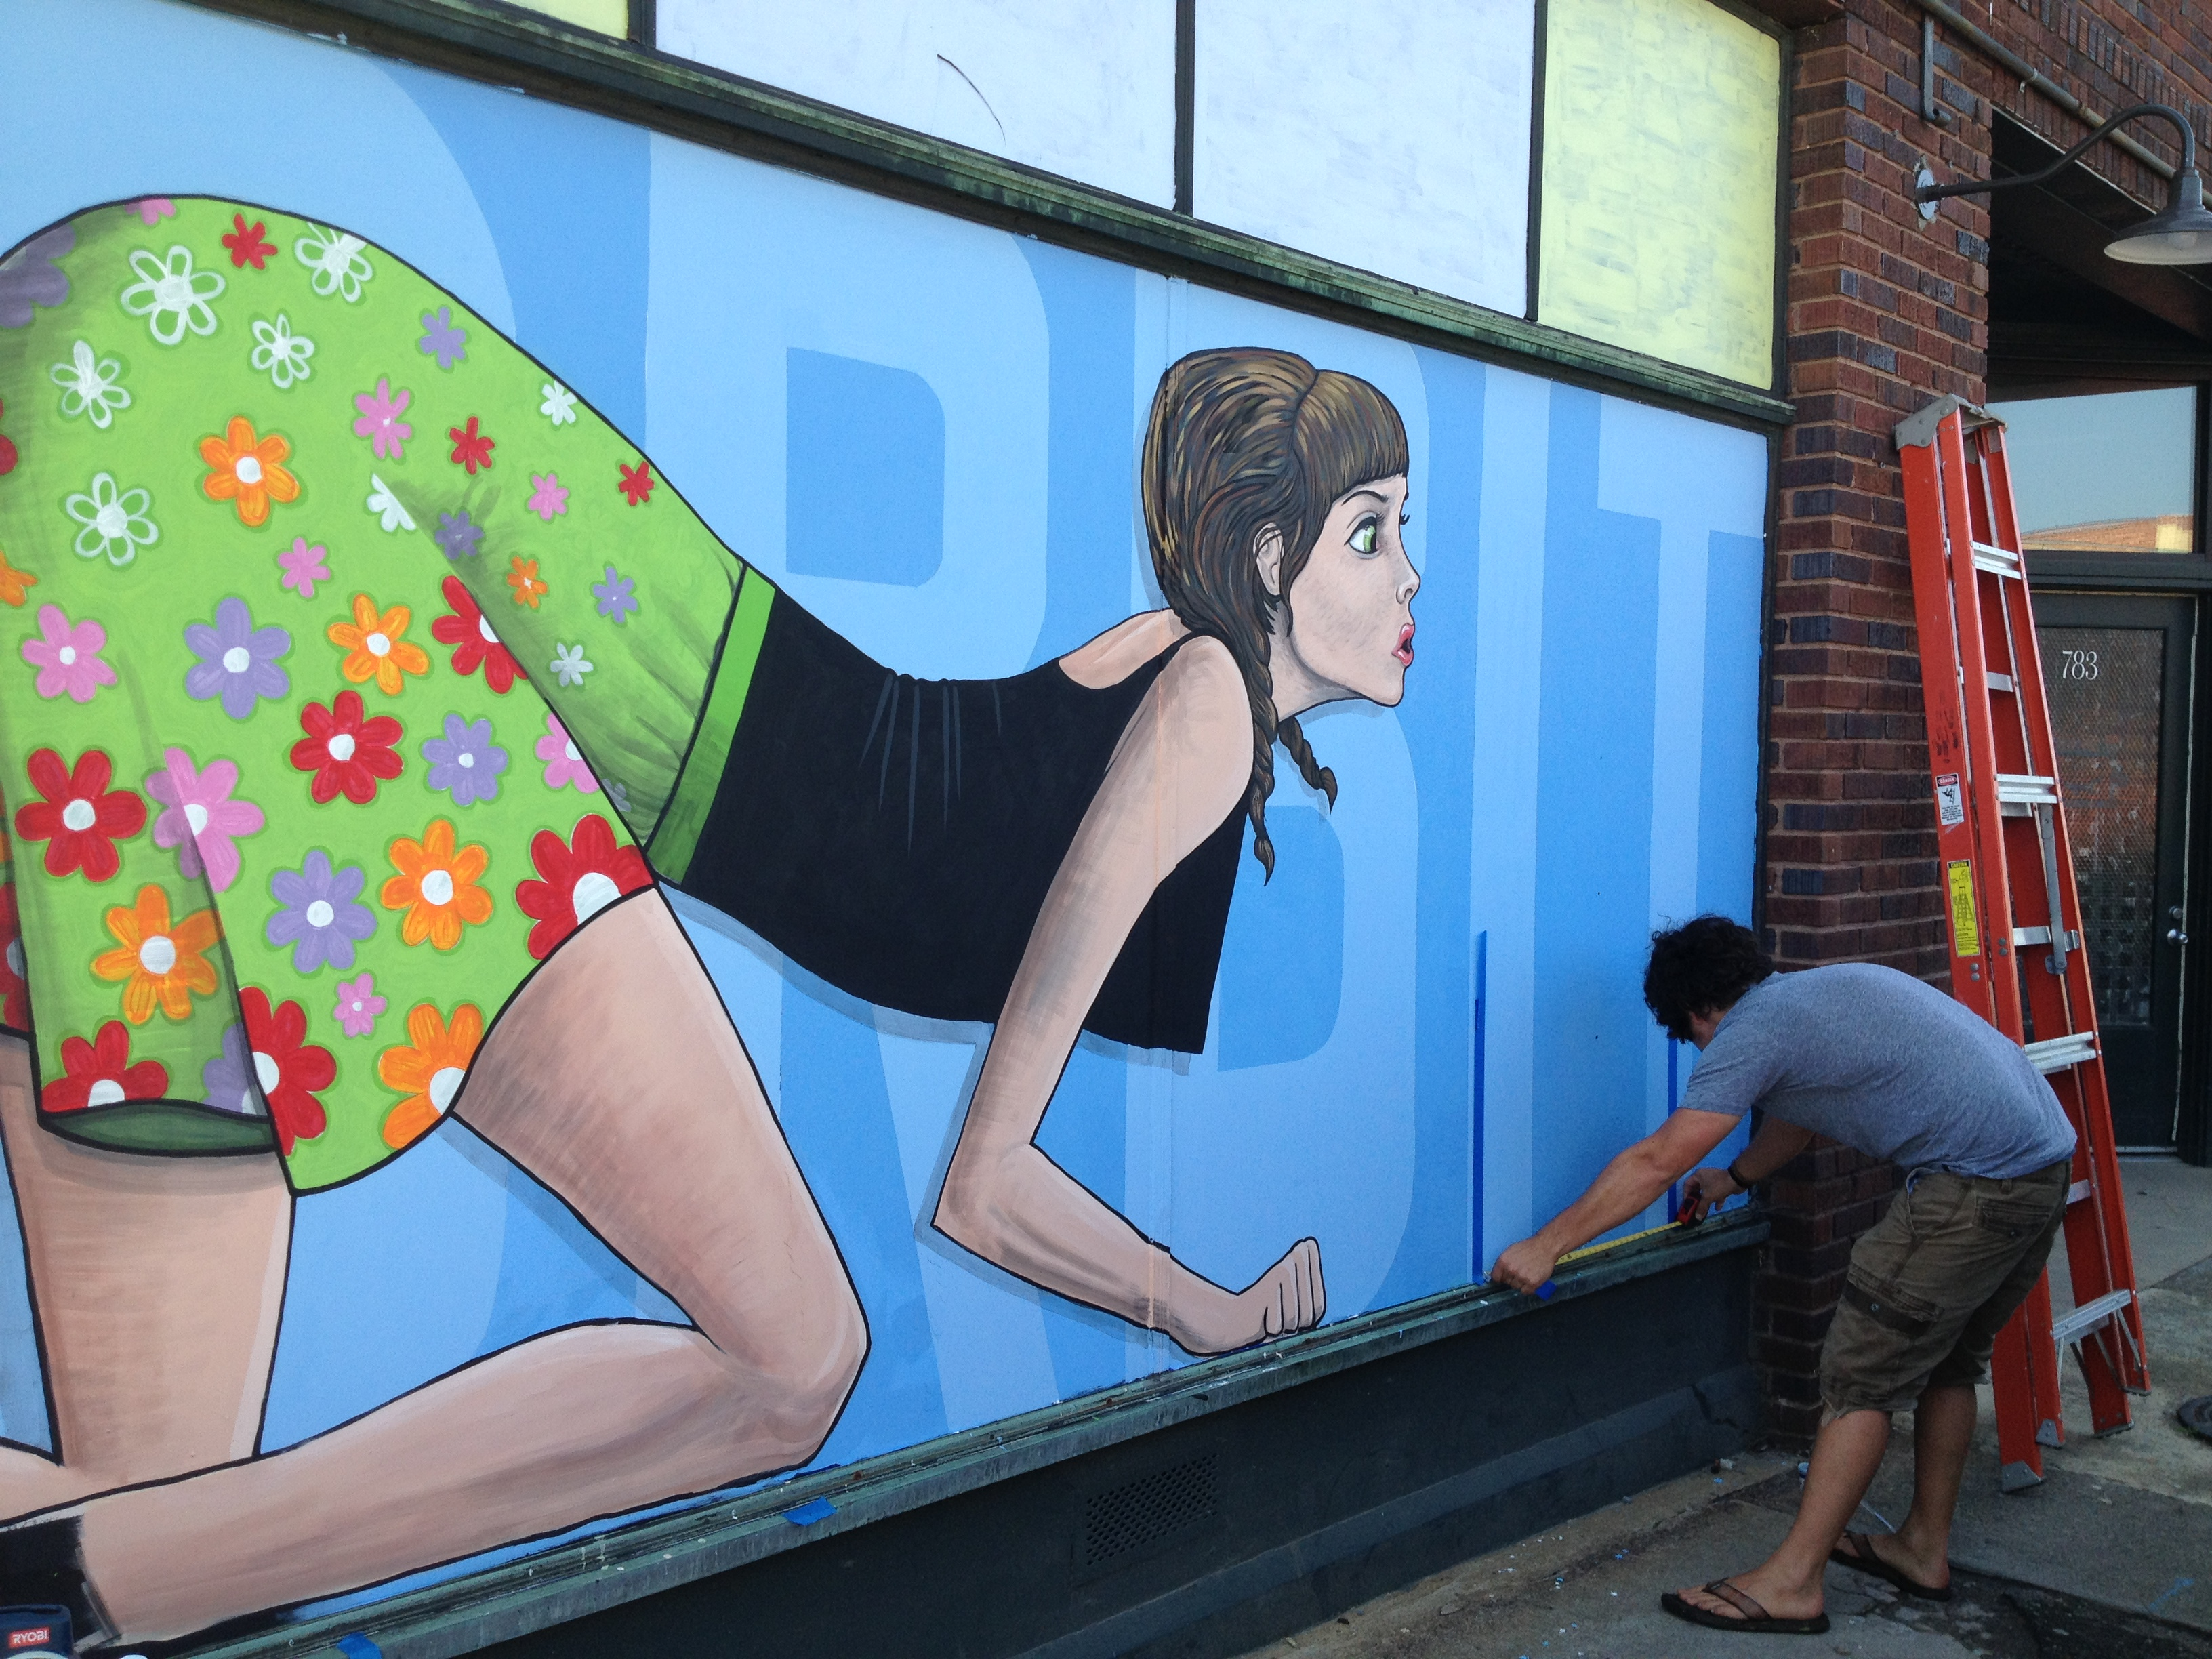 West Asheville residents debate artistic merit of new mural on Orbit DVD